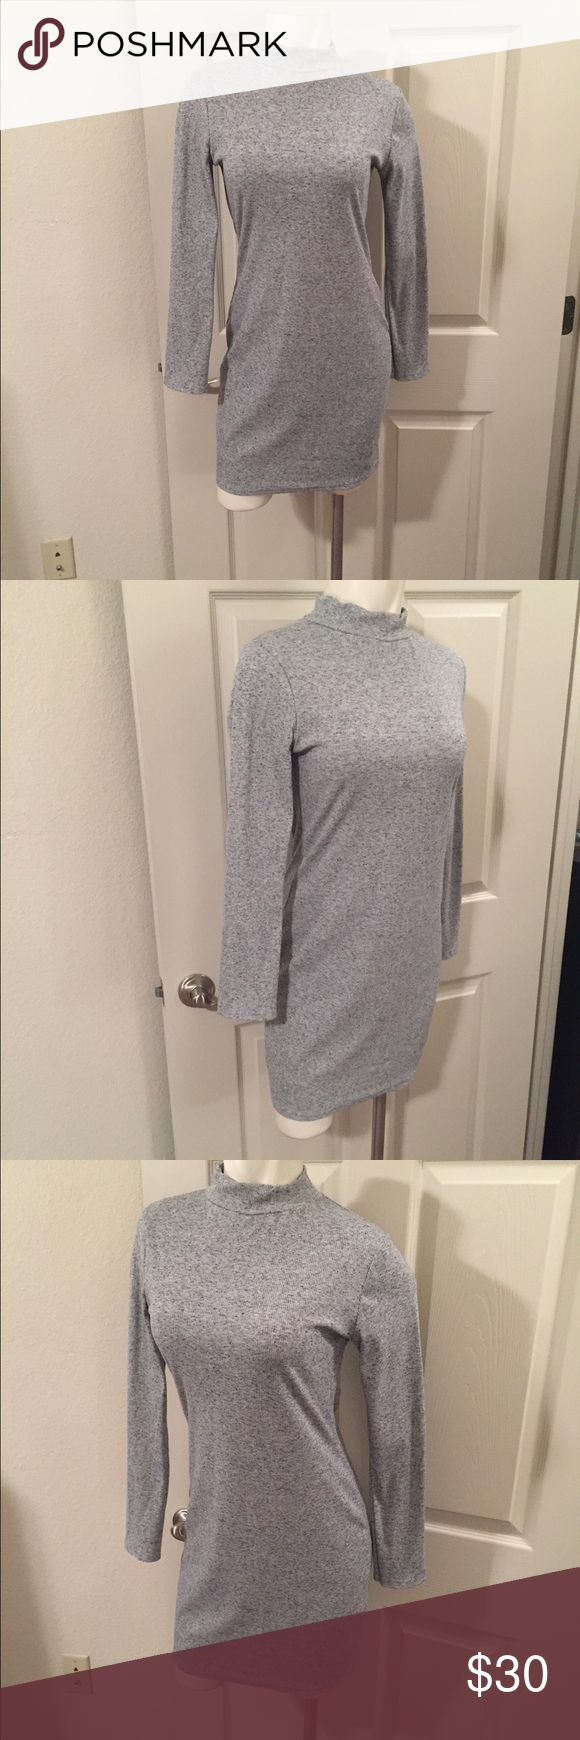 Misguided dress bnwot Brand new never worn no tags Missguided Dresses